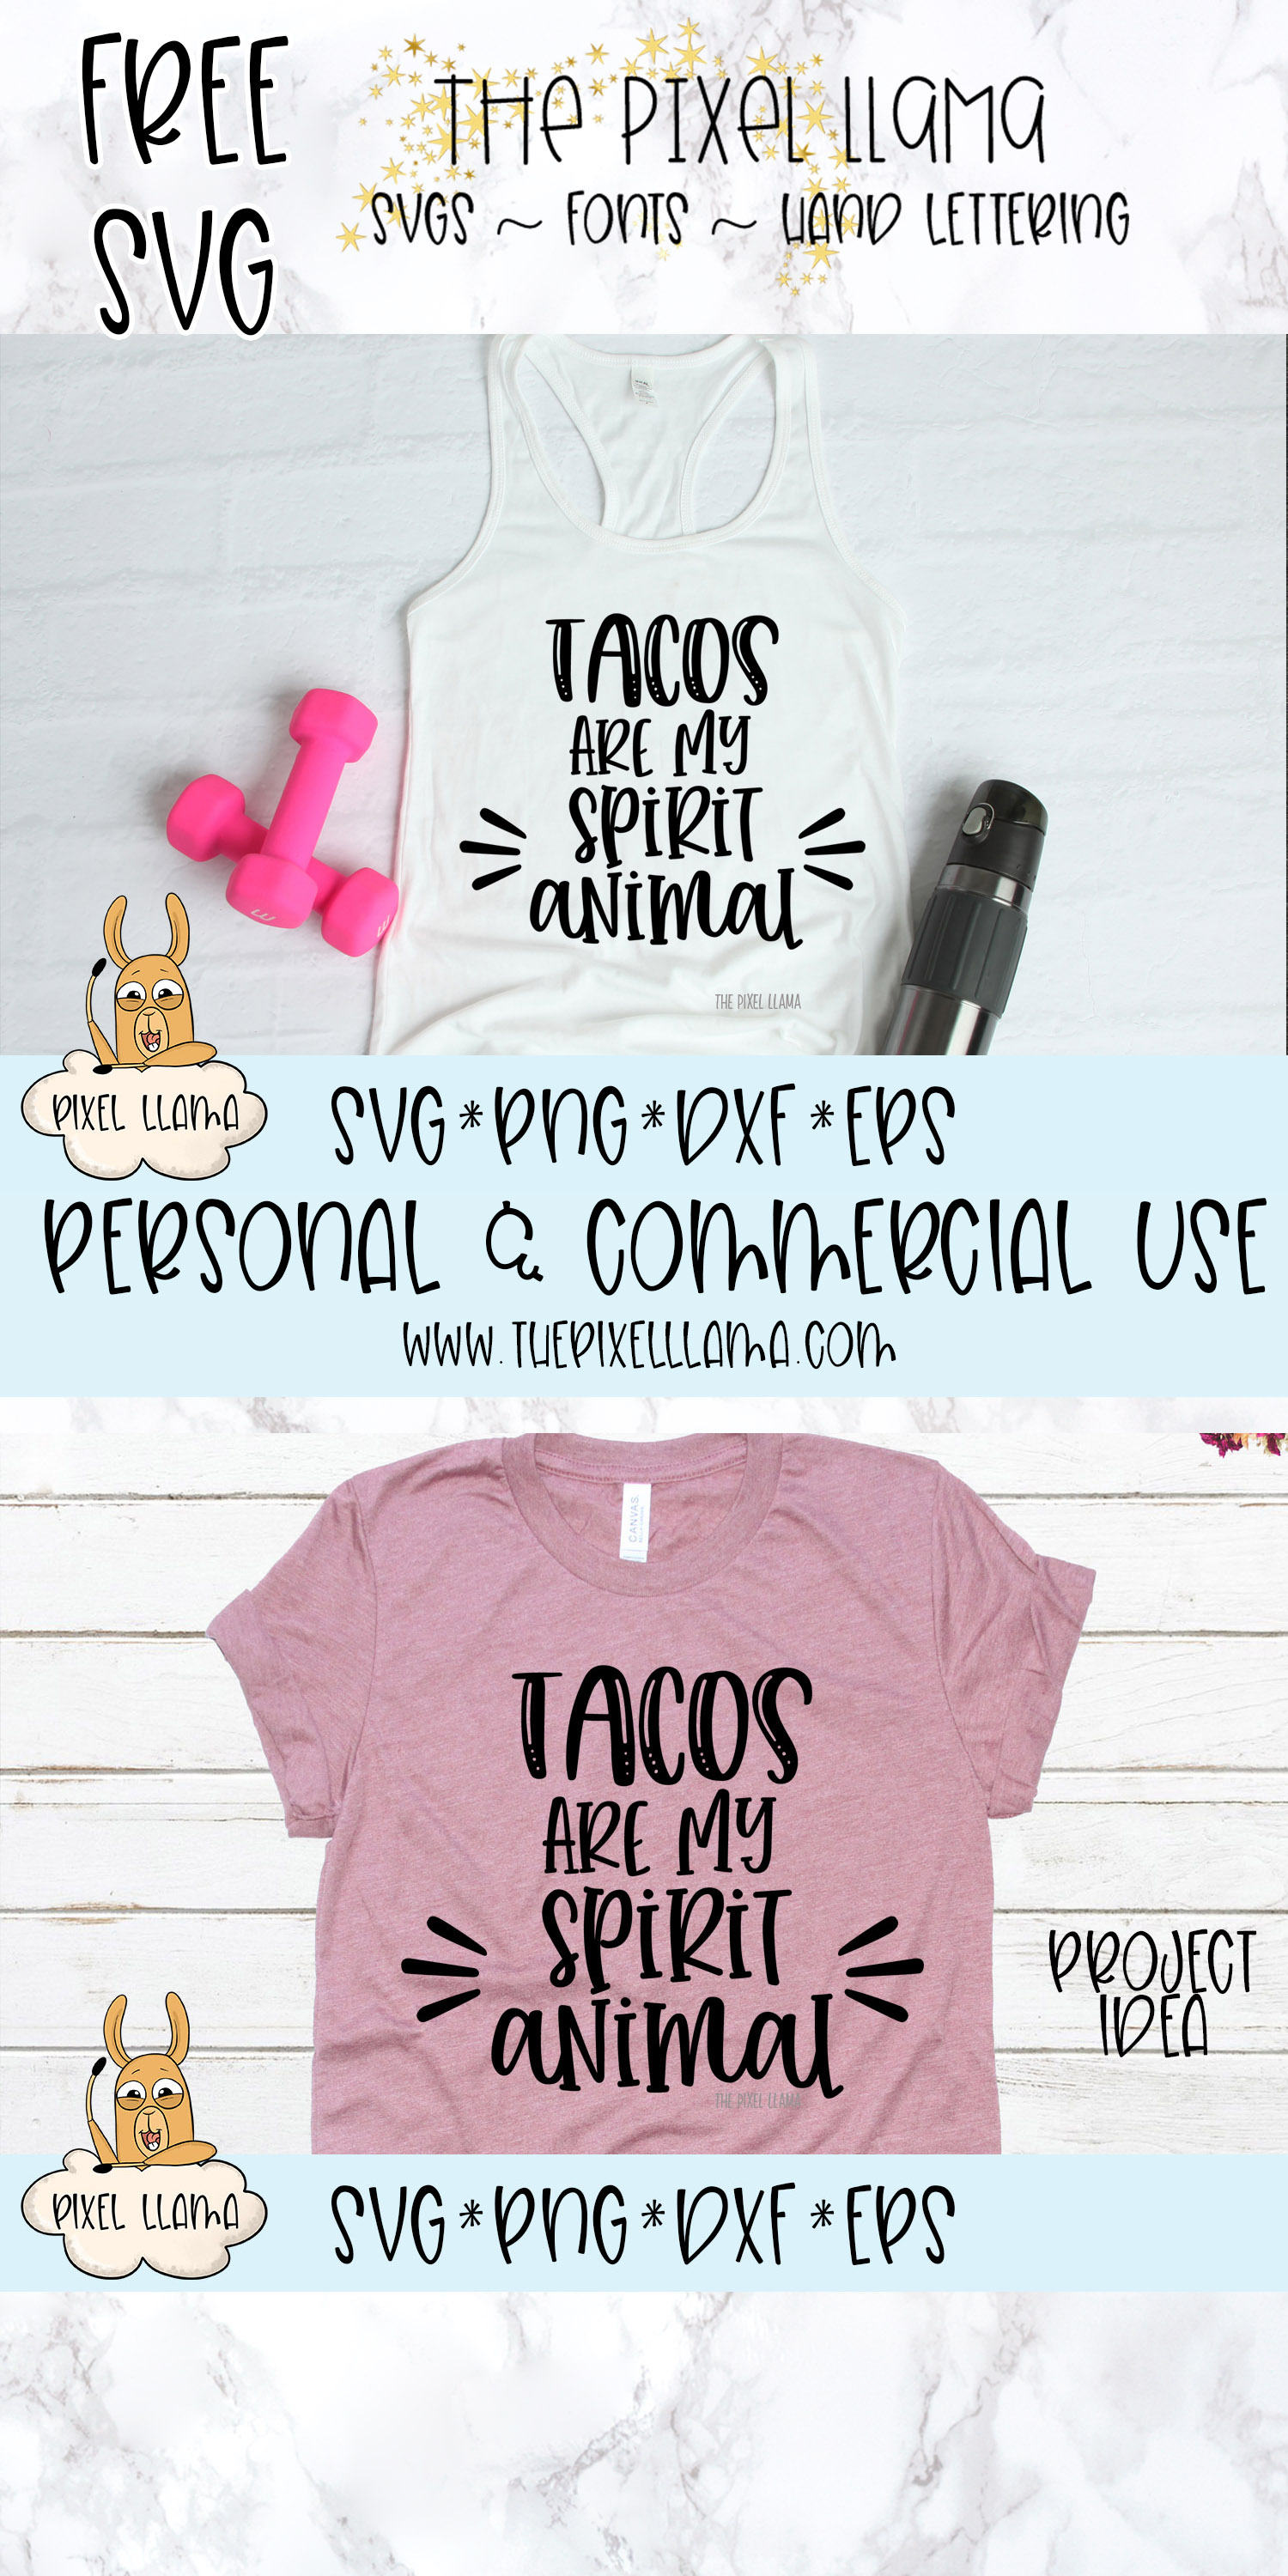 Tacos Are My Spirit Animal SVG example image 3